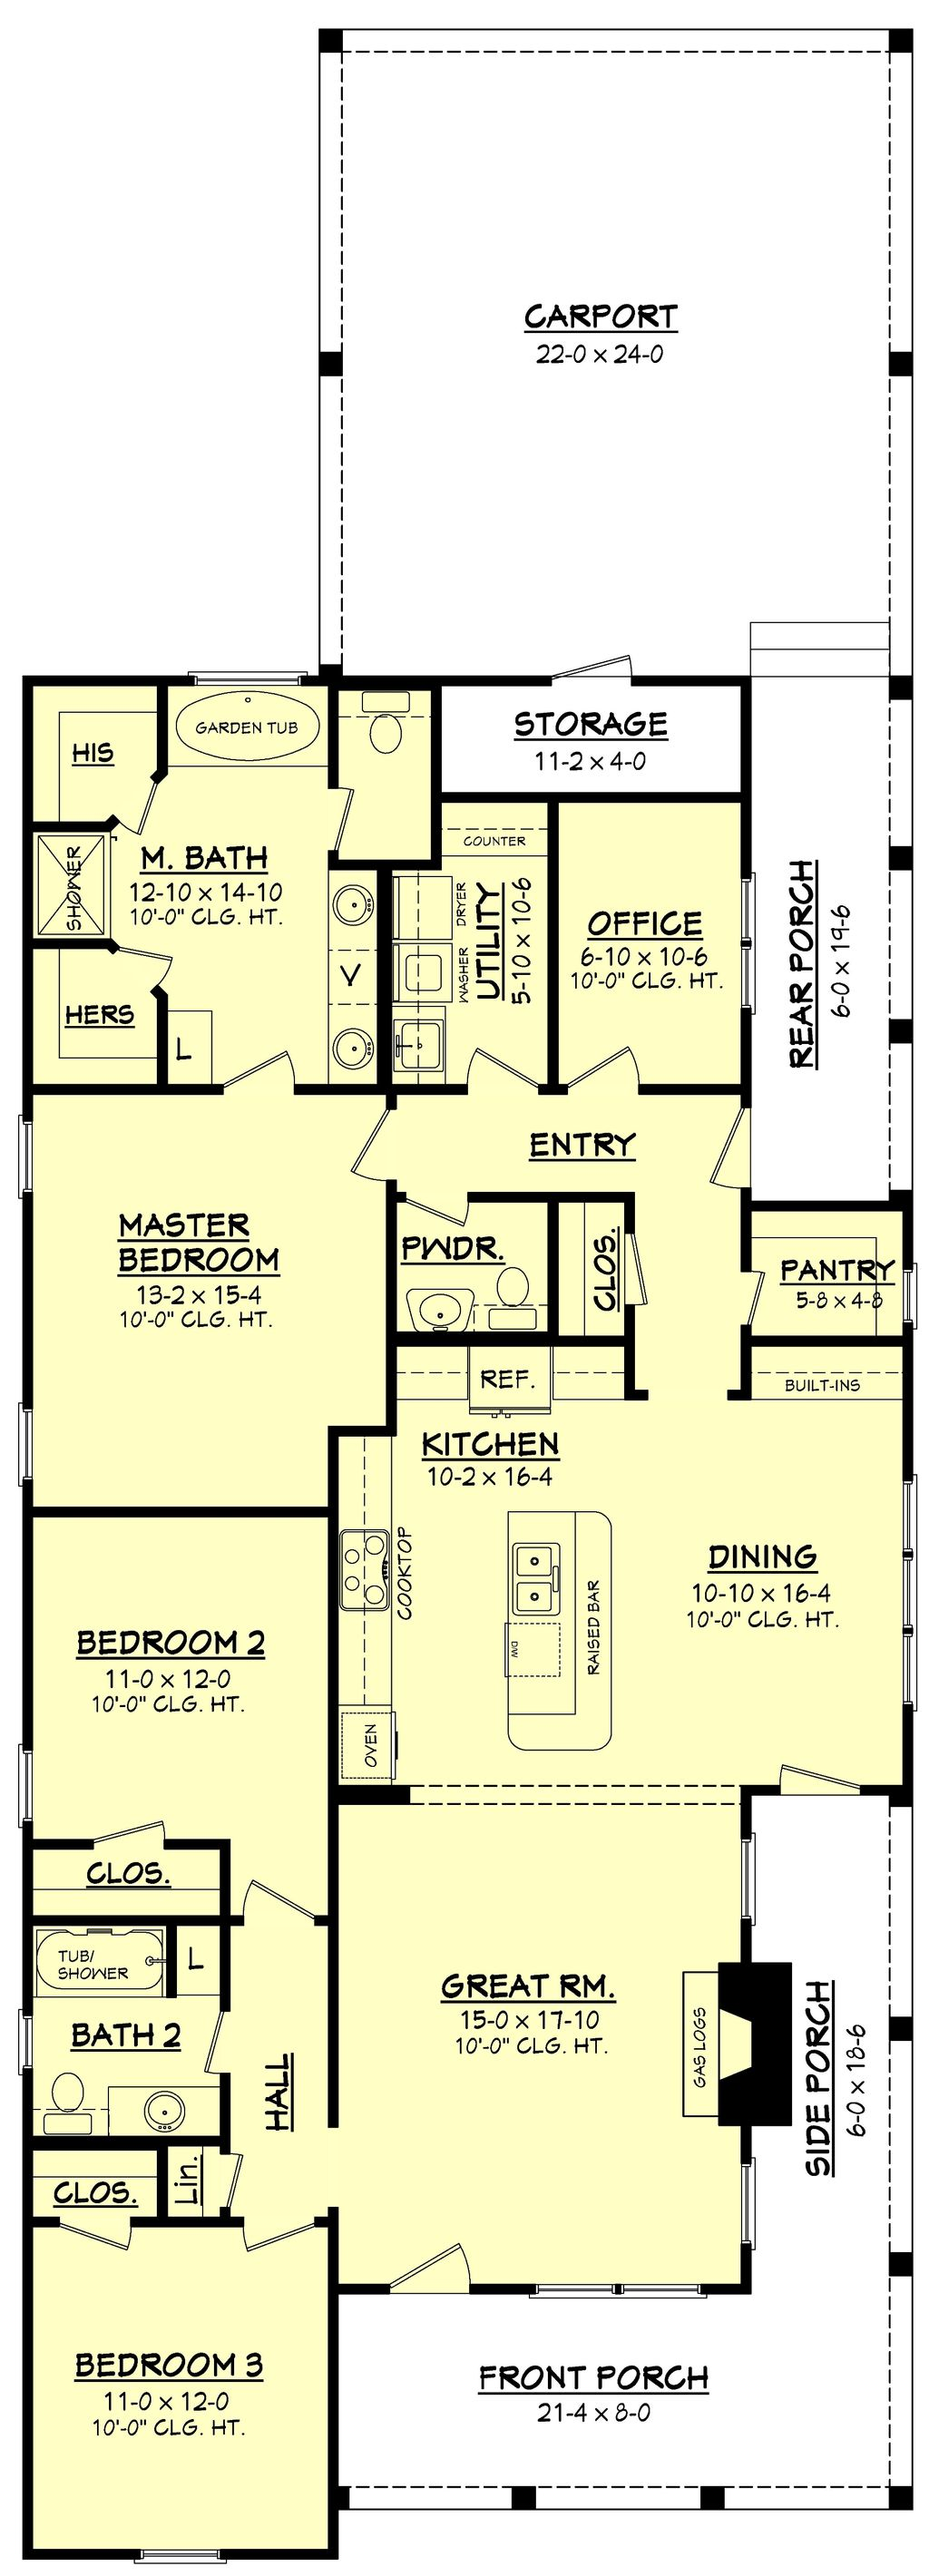 Farmhouse style house plan 3 beds 2 5 baths 1825 sq ft for Floor plan services